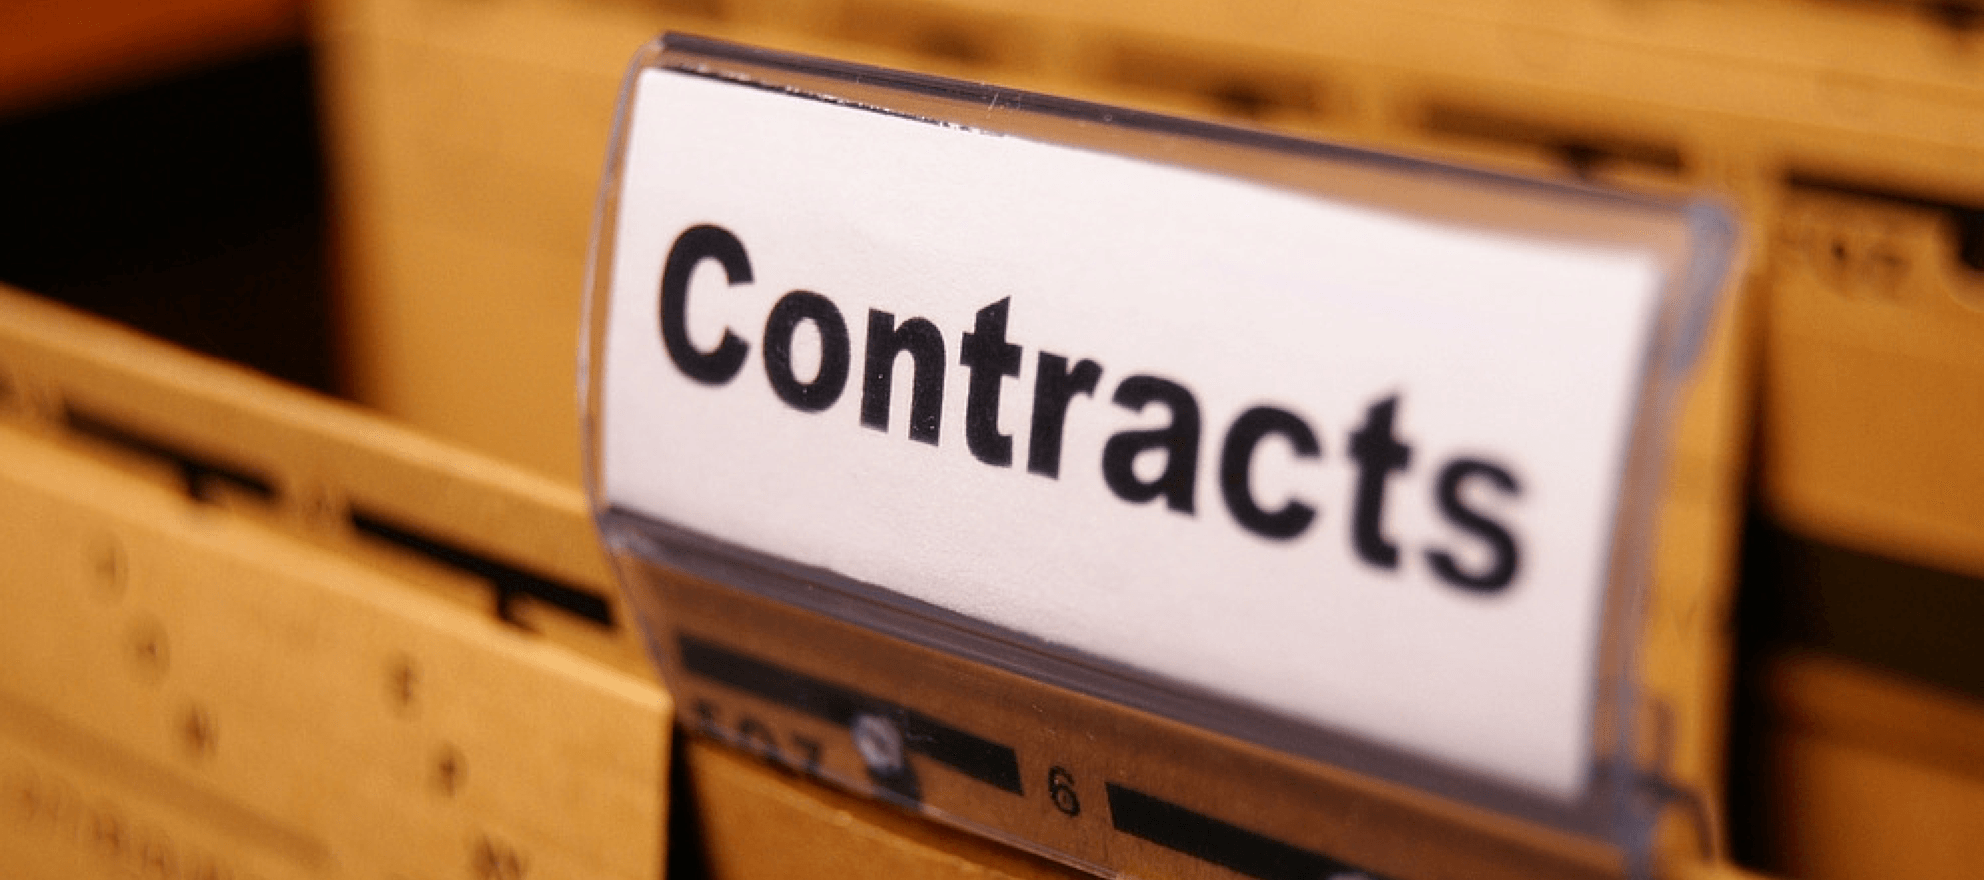 Preprinted real estate contracts could get you fined